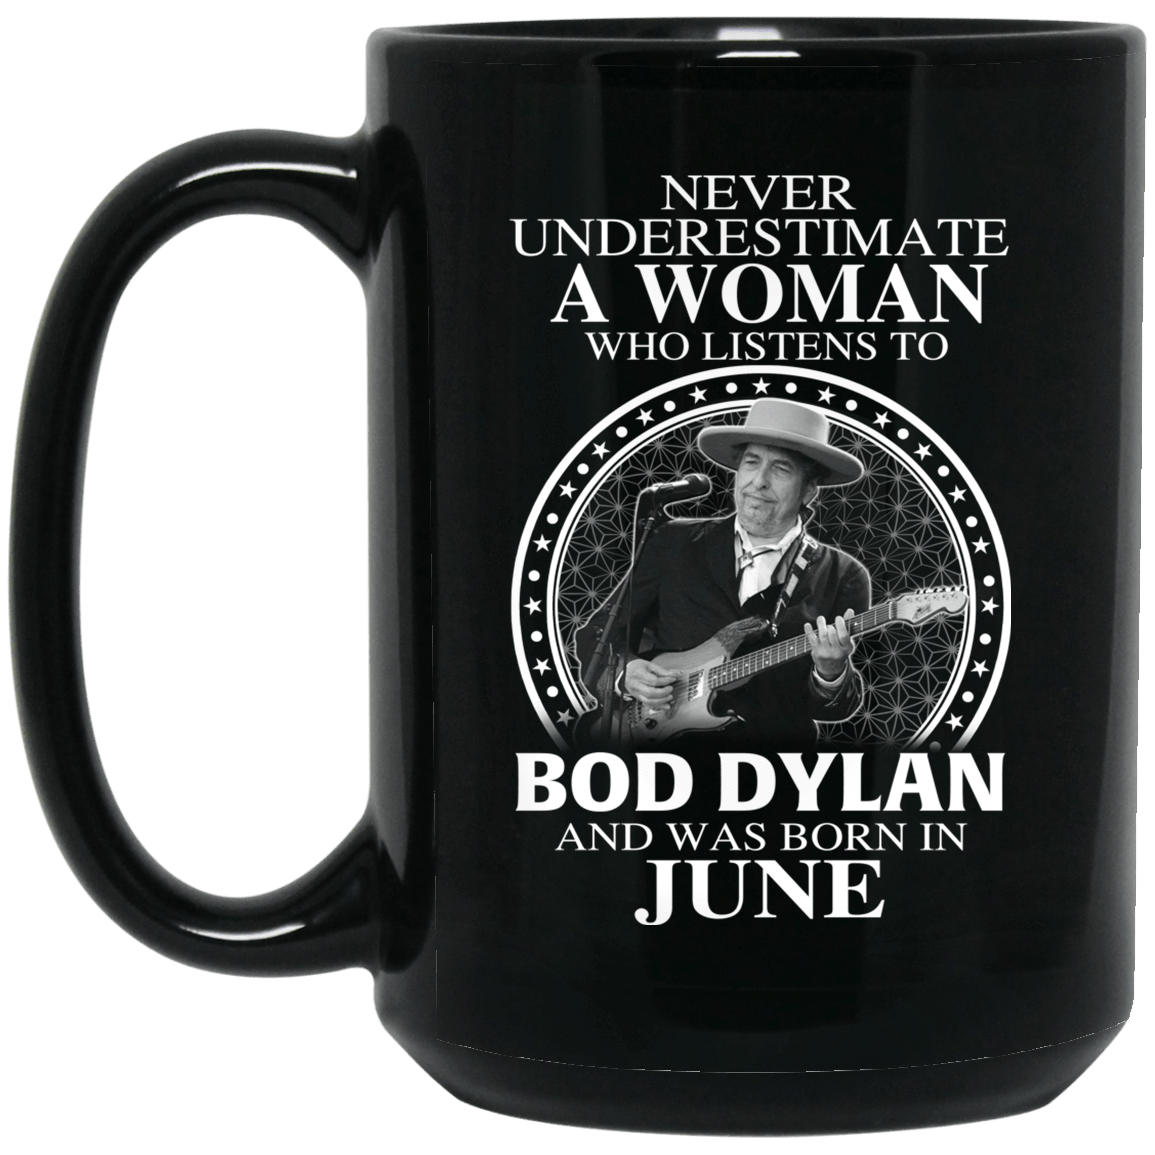 A Woman Who Listens To Bob Dylan And Was Born In June Mug 1066-10182-76154522-49311 - Tee Ript